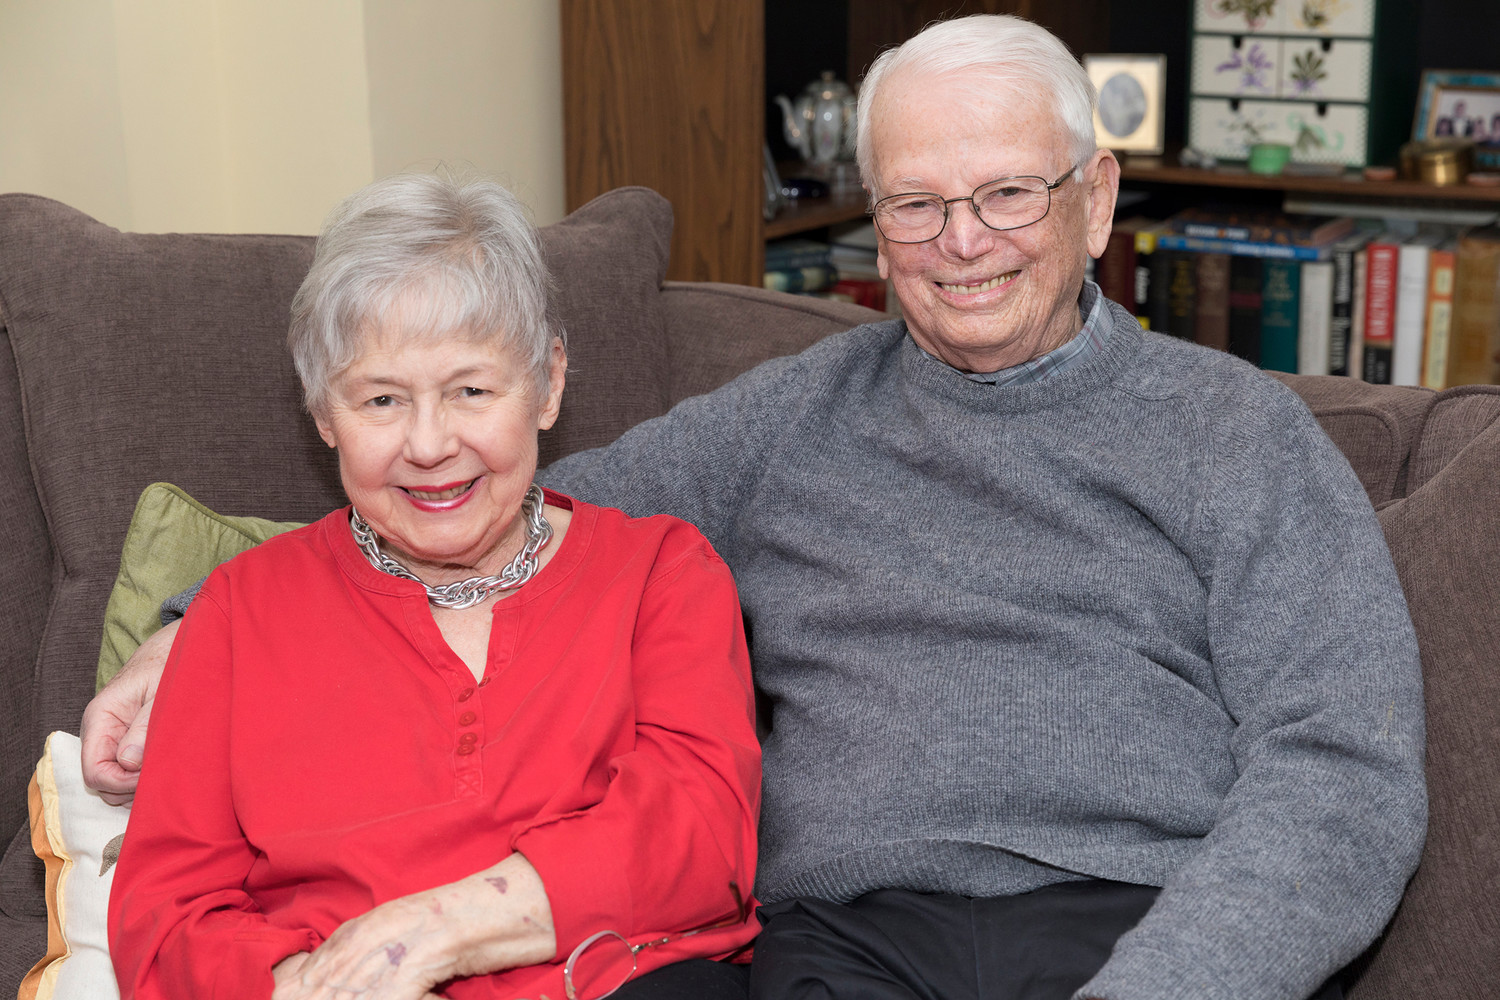 Bess June and John Lane, who will celebrate their 60th wedding anniversary Feb. 15, pose at their home in Rye this month.